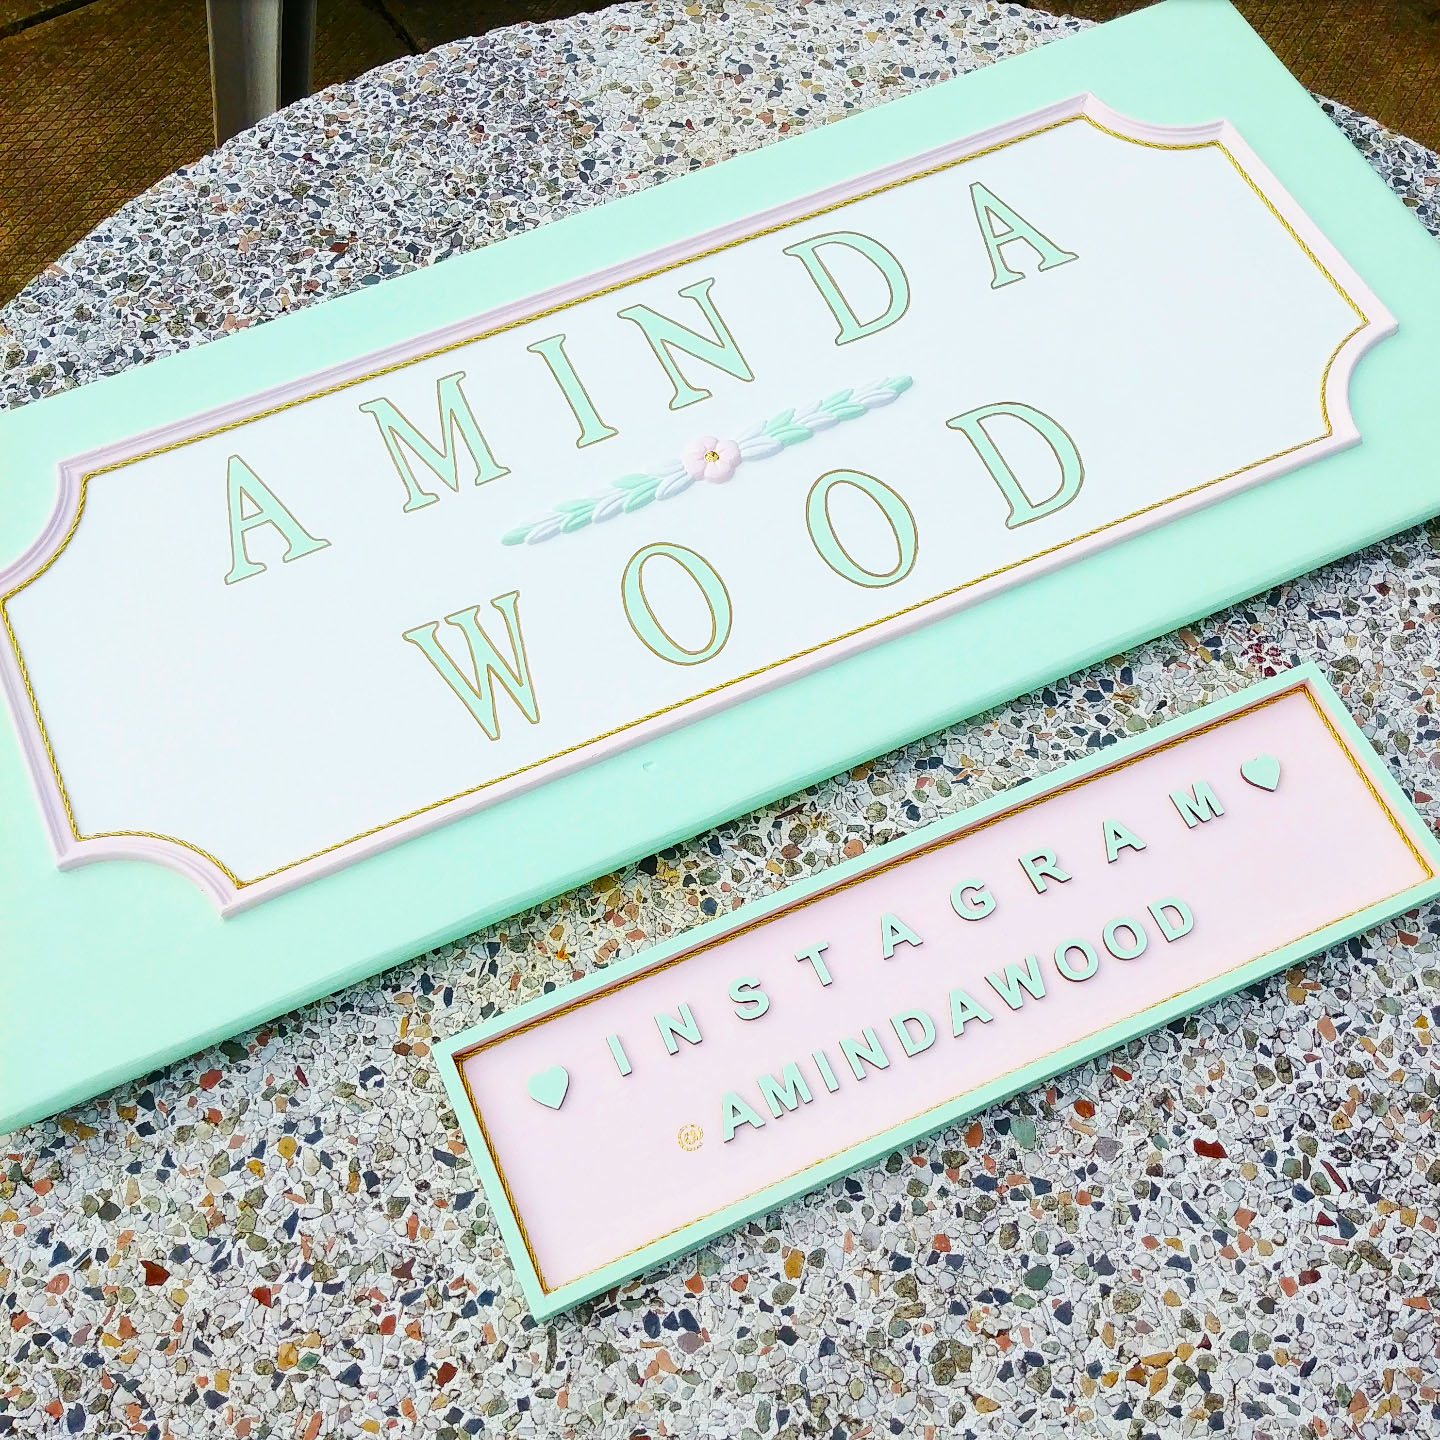 Look for my new hand painted sign next time you visit my shop!